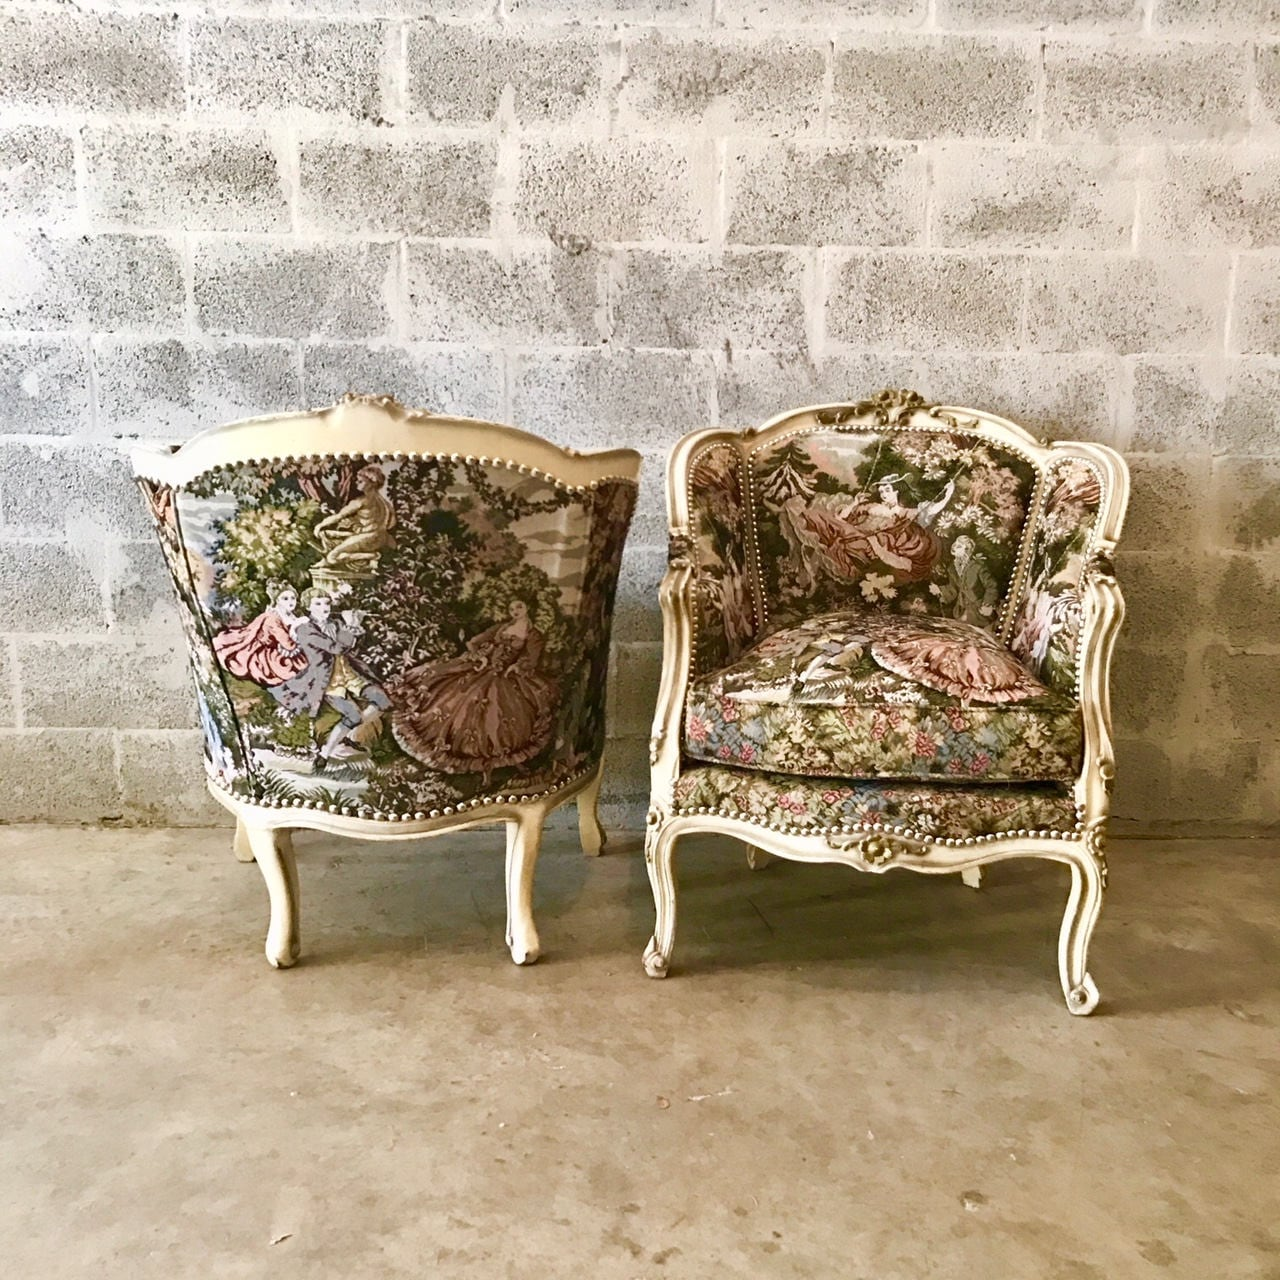 French Chair Romeo Juliet Upholstery Fabric Bergere Cream Beige